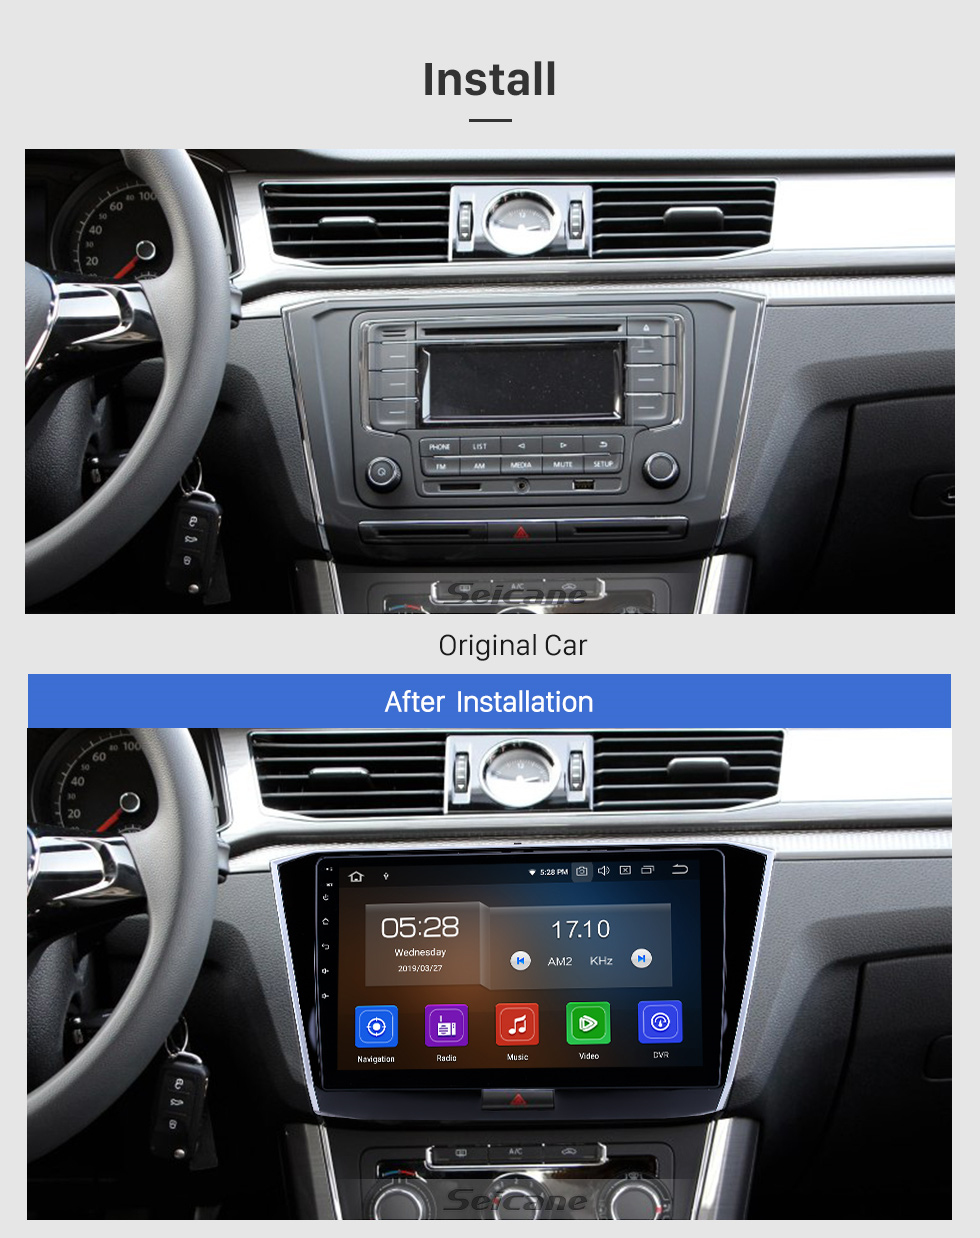 Seicane 10.1 inch Android 9.0 Radio for 2016-2018 VW Volkswagen Passat Bluetooth HD Touchscreen GPS Navigation Carplay USB support OBD2 Backup camera